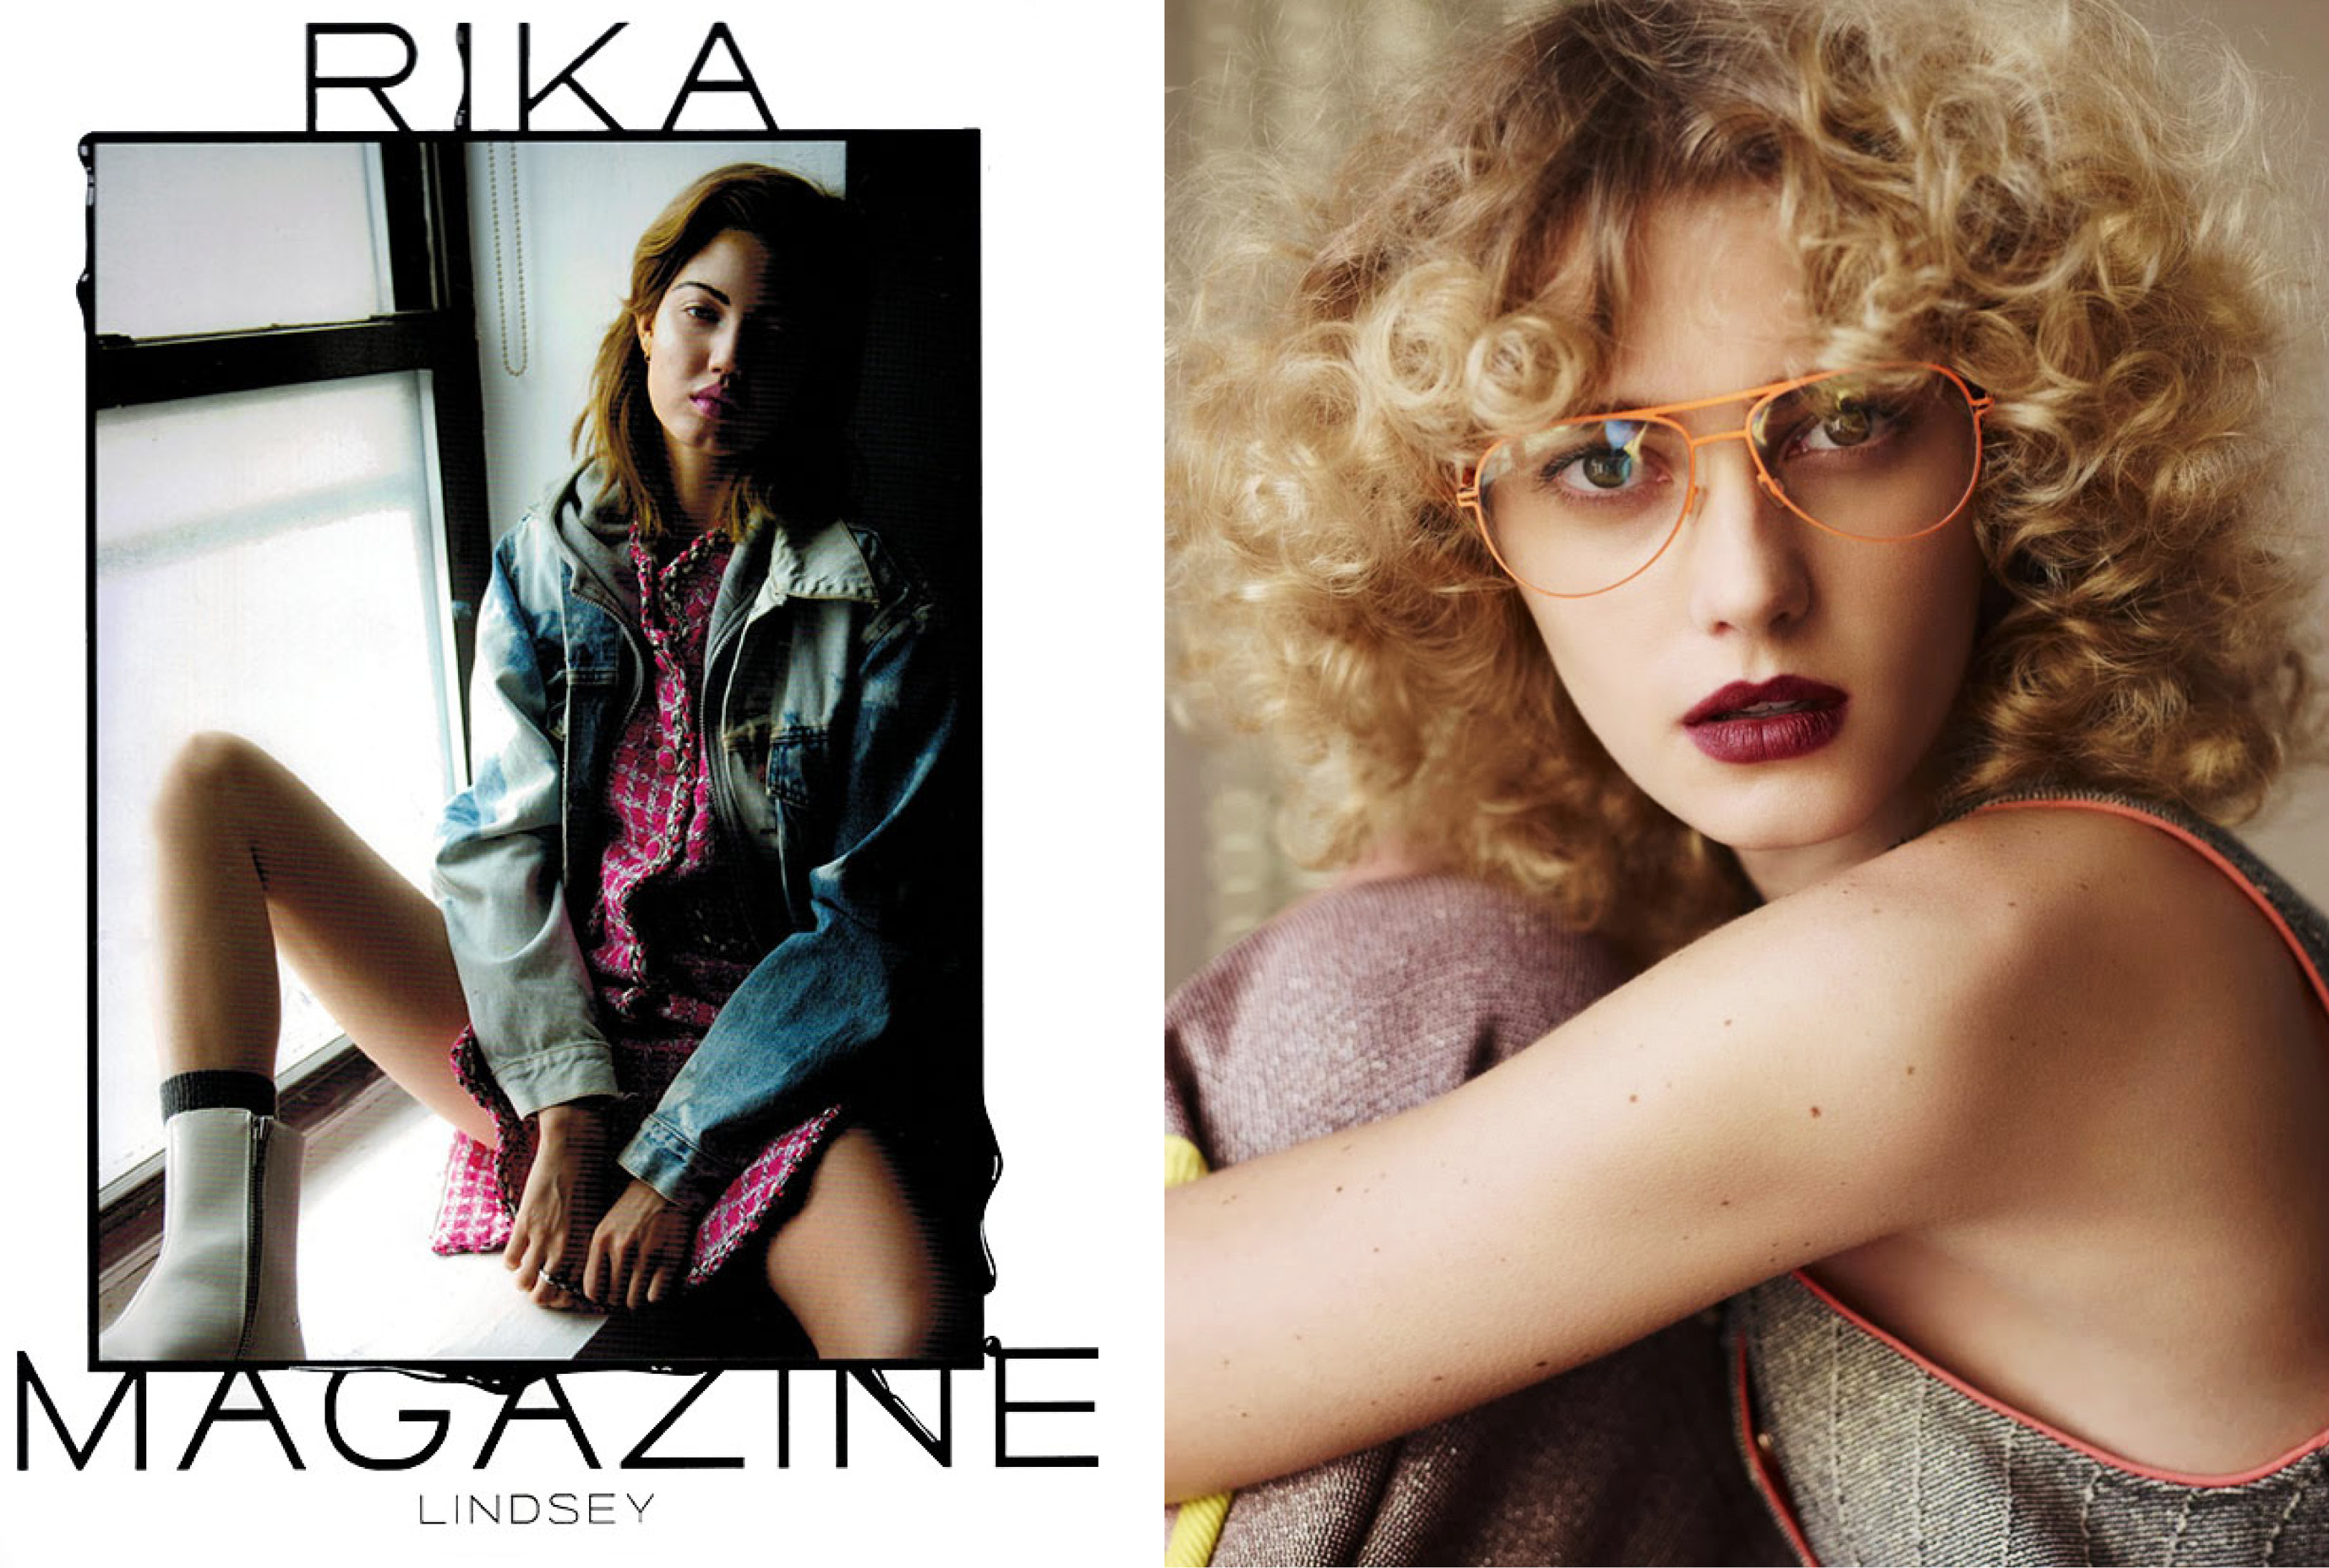 MYKITA Clipping Rika Netherlands